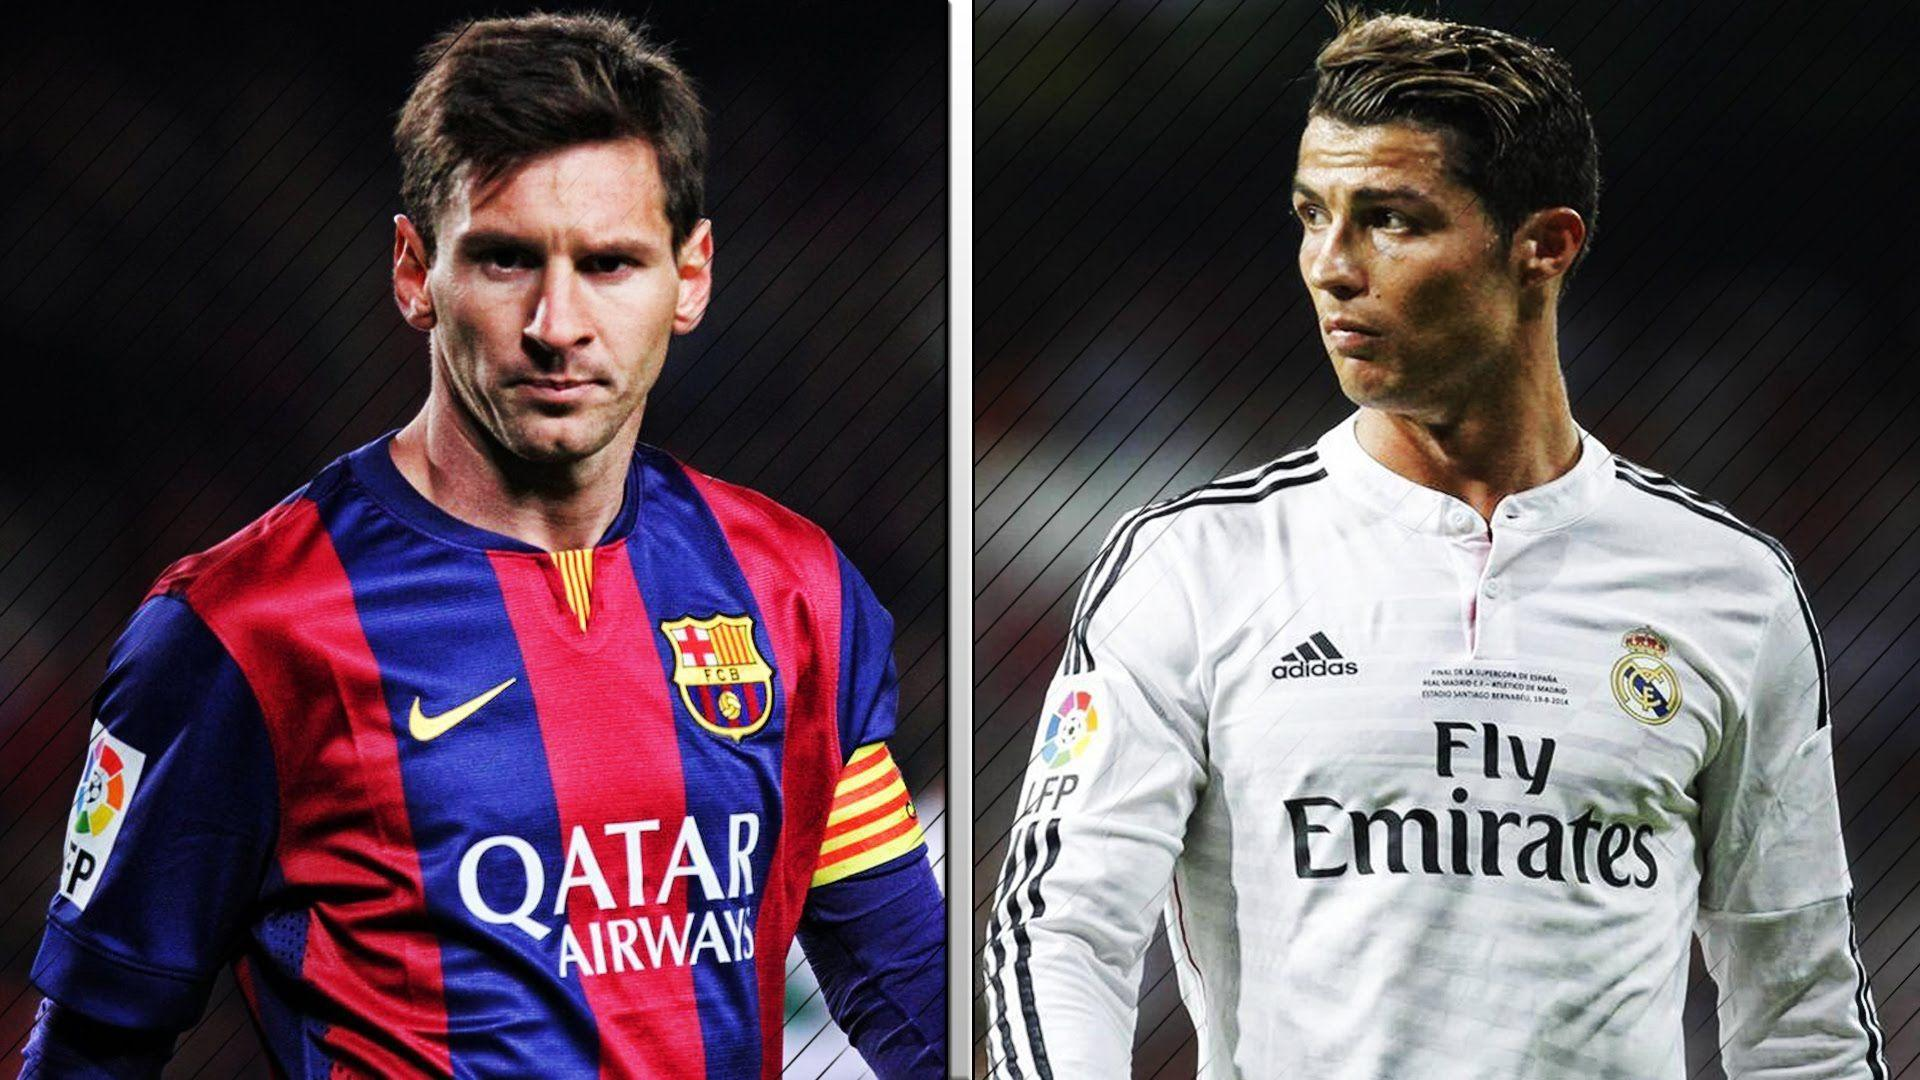 Messi Vs Ronaldo Wallpapers 2016 HD